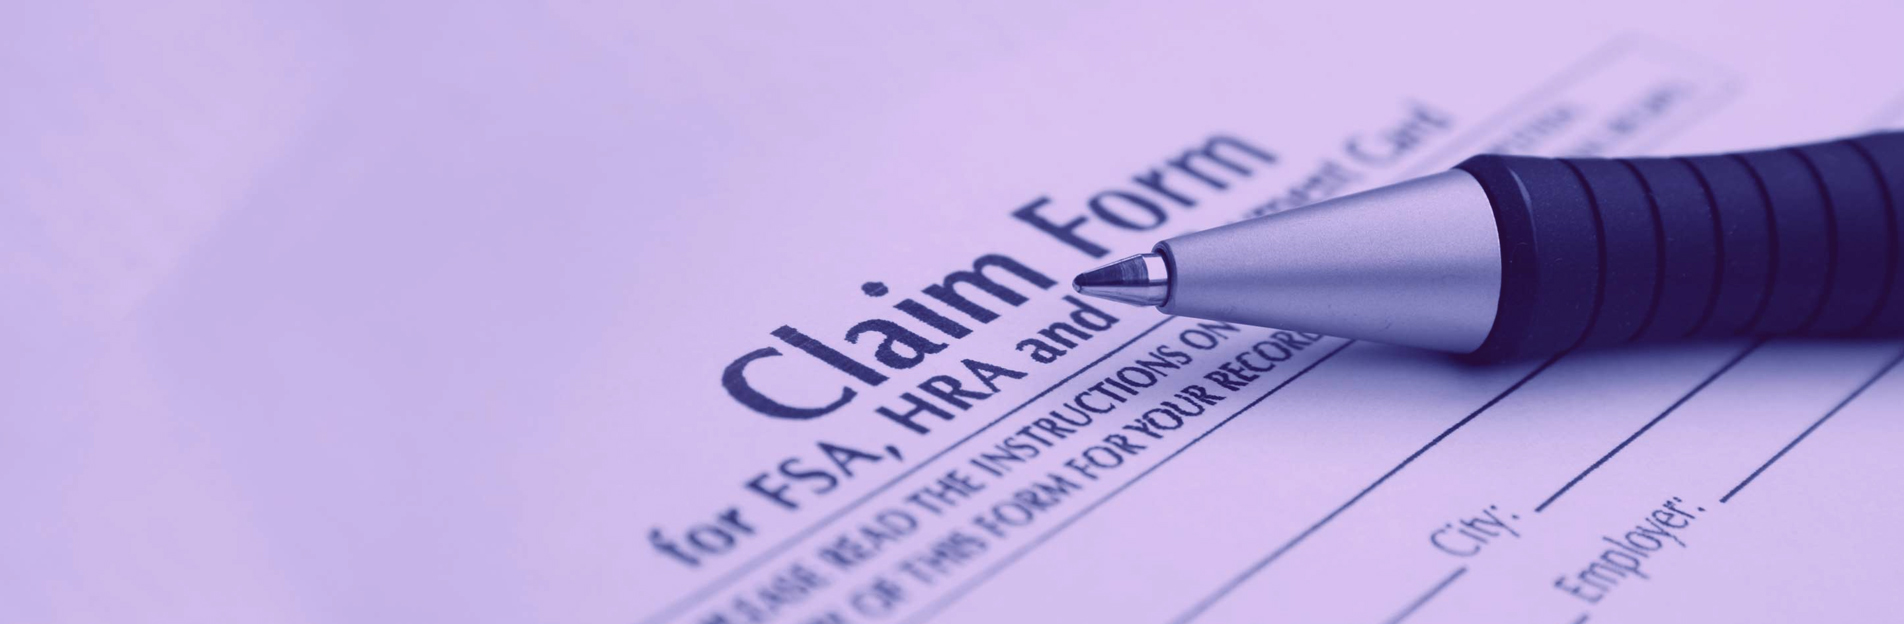 about-claim